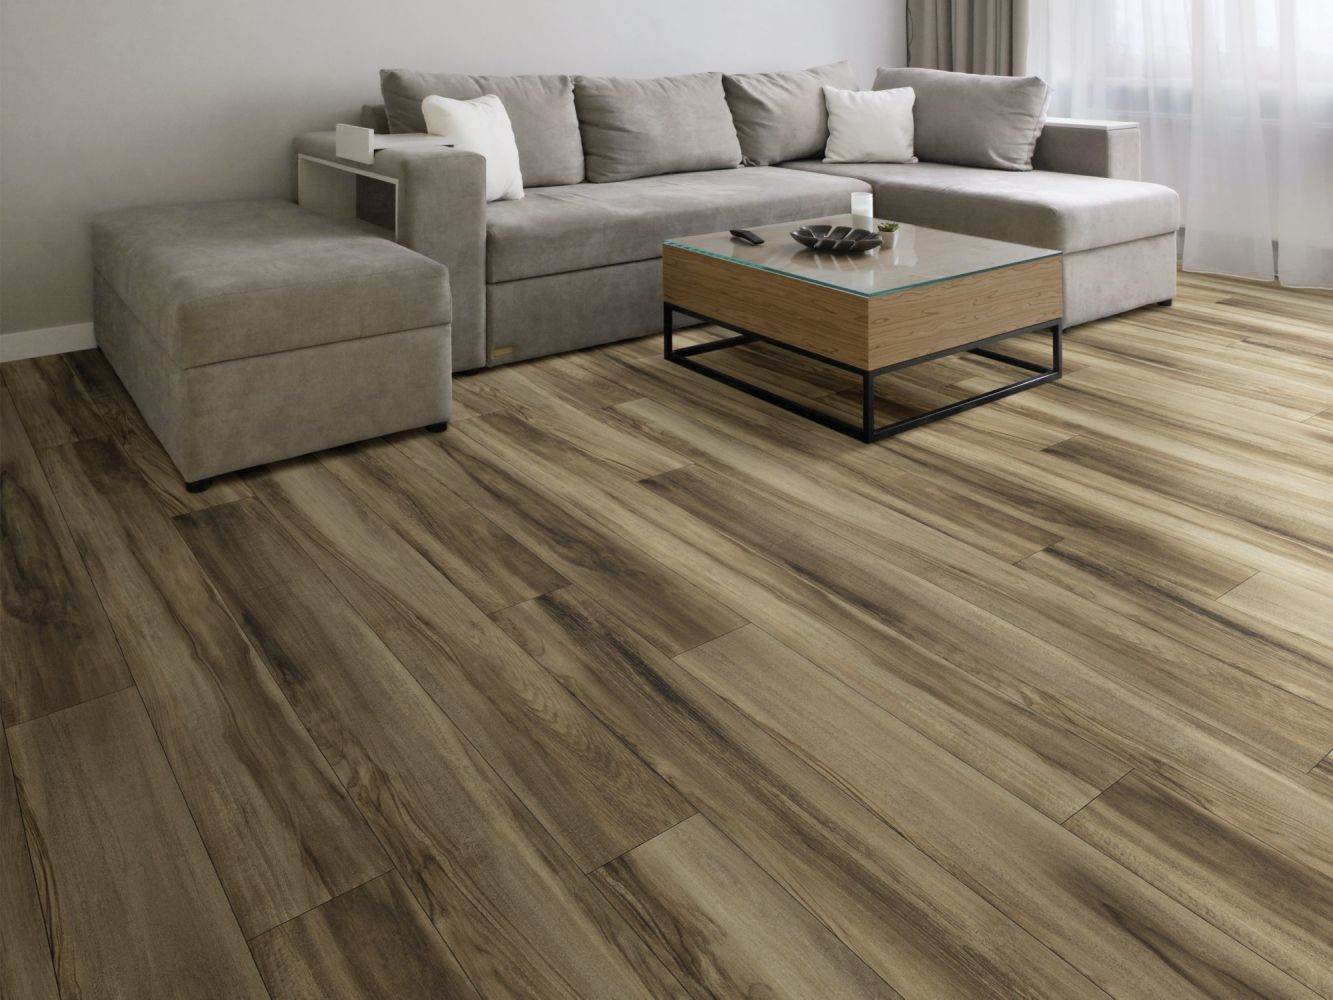 Shaw Floors Resilient Residential Cottage Chic Pennypack 00248_1048V